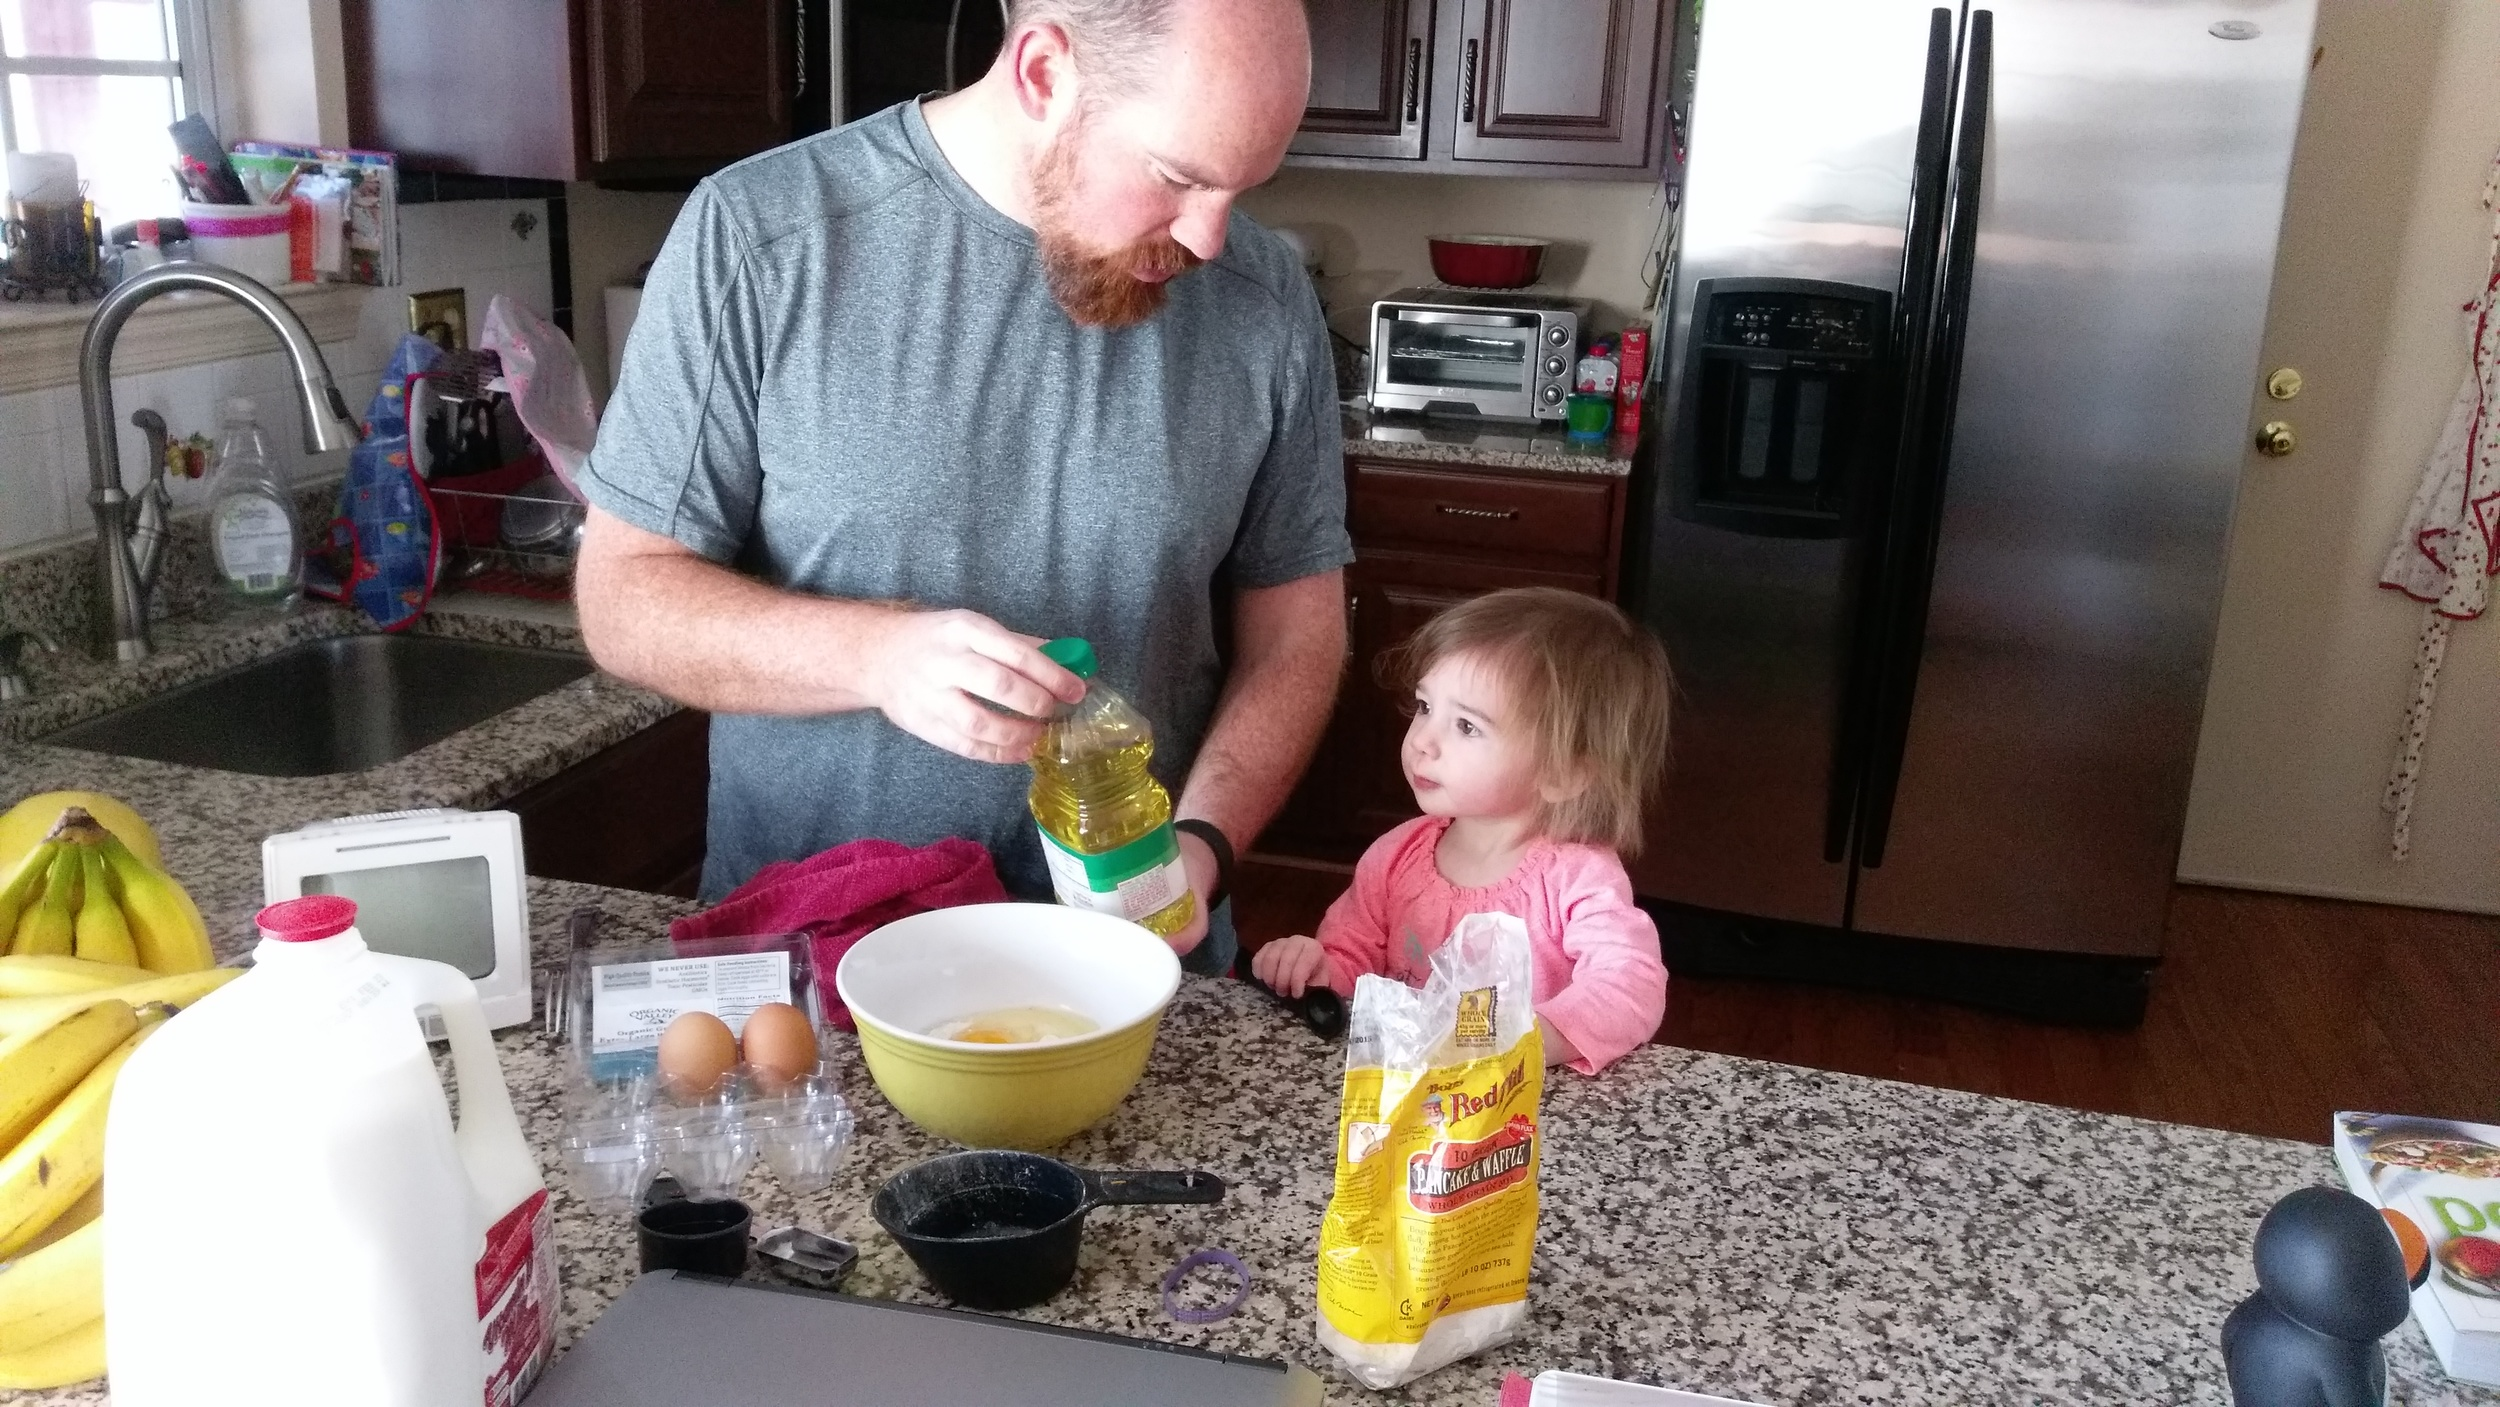 One day she will be making the pancakes for me.